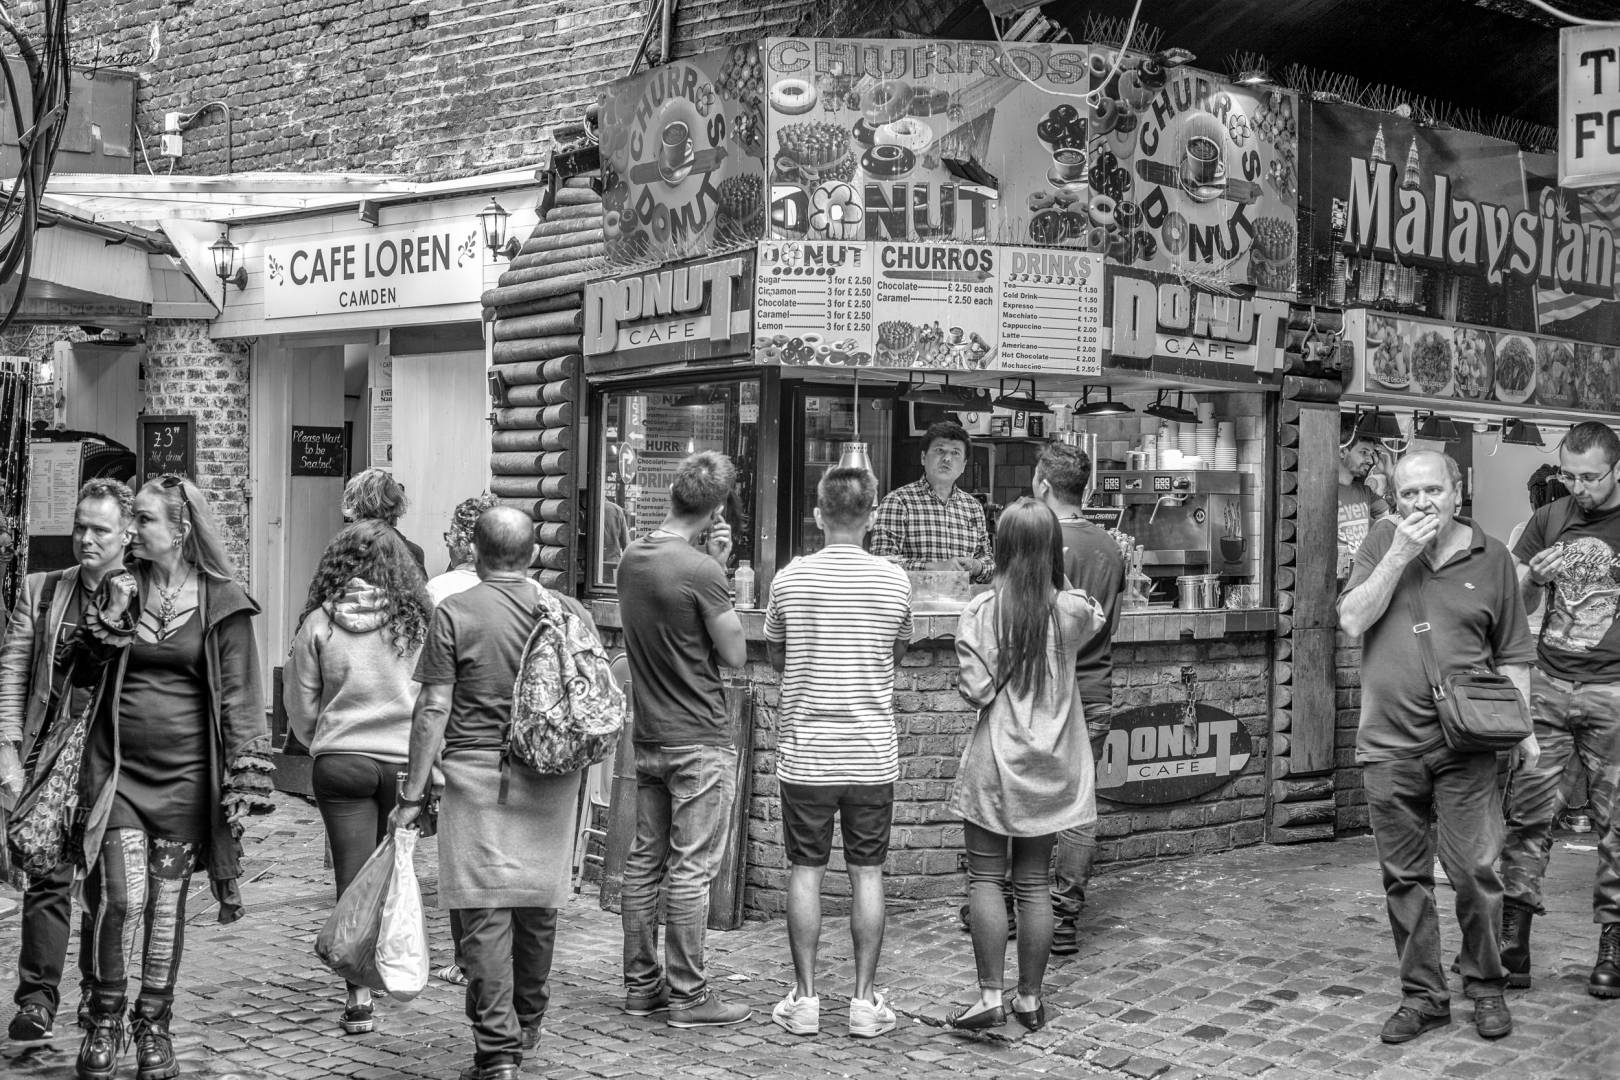 Camden Market, London (Leica Monochrom with 50mm Summicron)